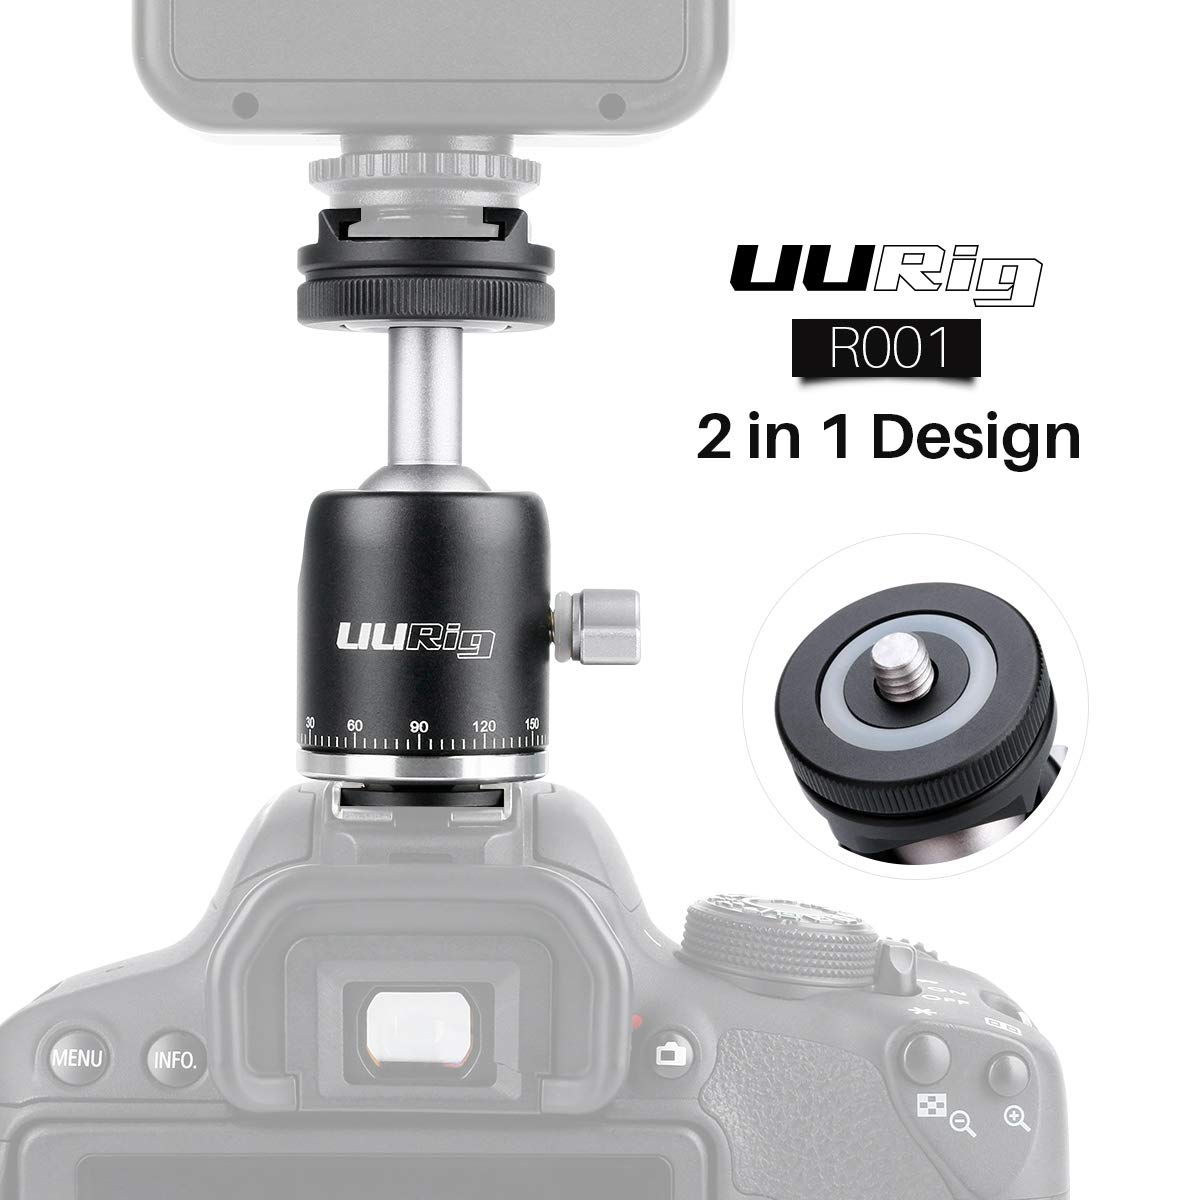 Ball head mini xoay 360 độ - UUrig R001 Ulanzi